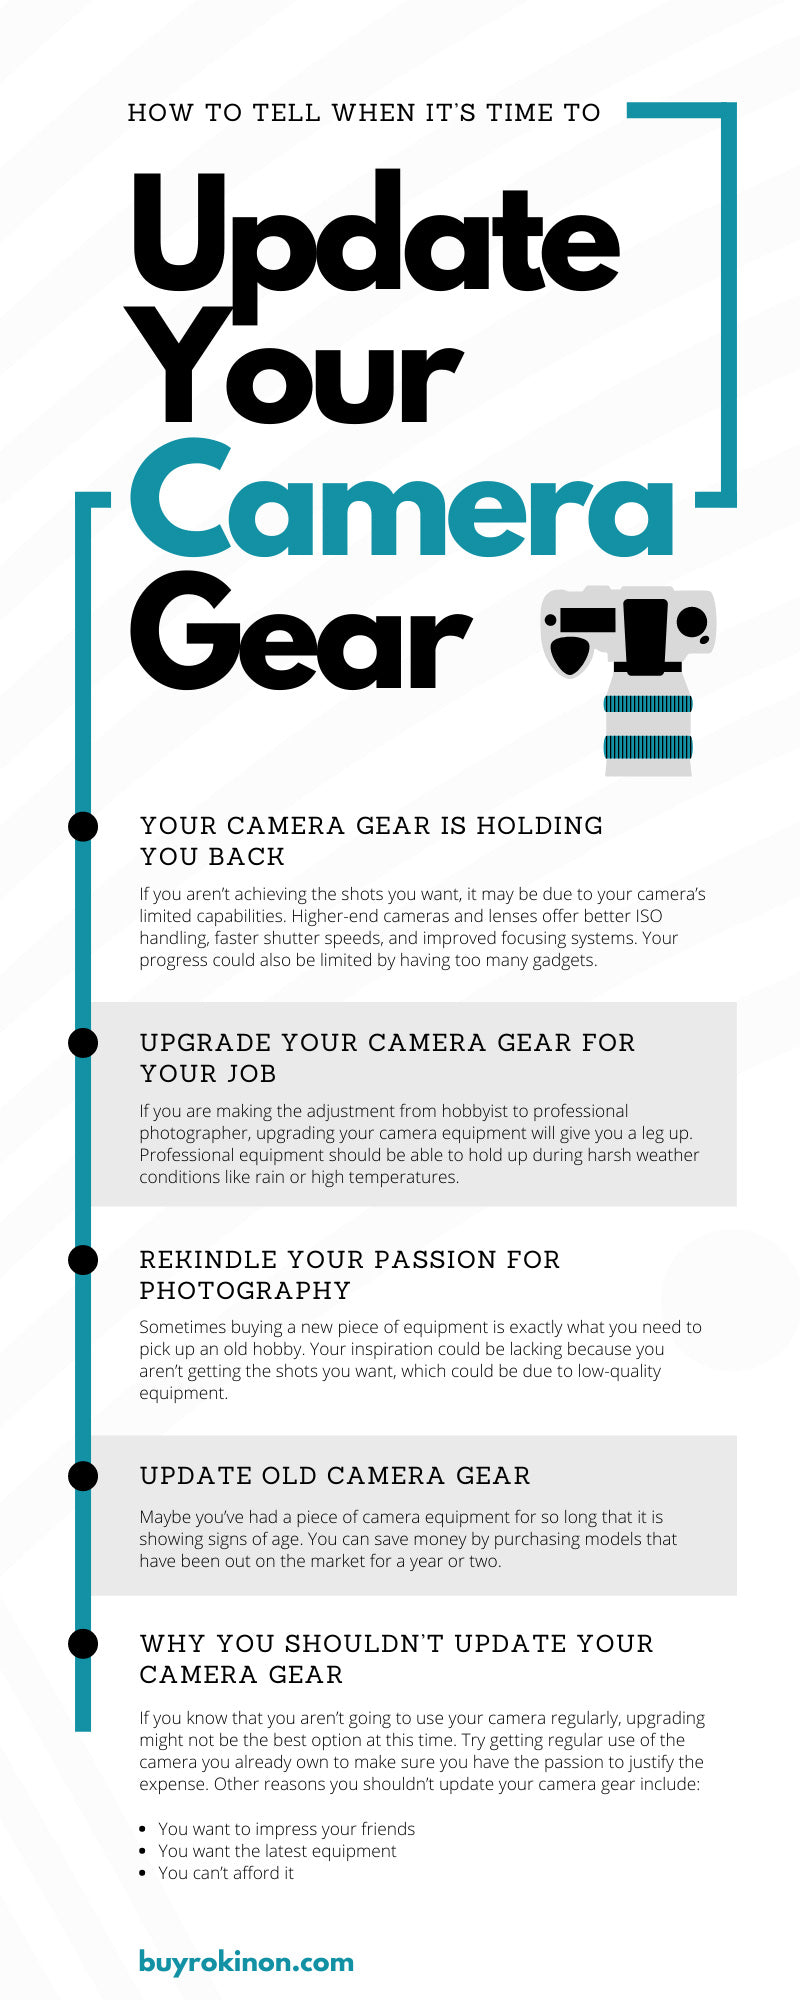 How To Tell When It's Time To Update Your Camera Gear